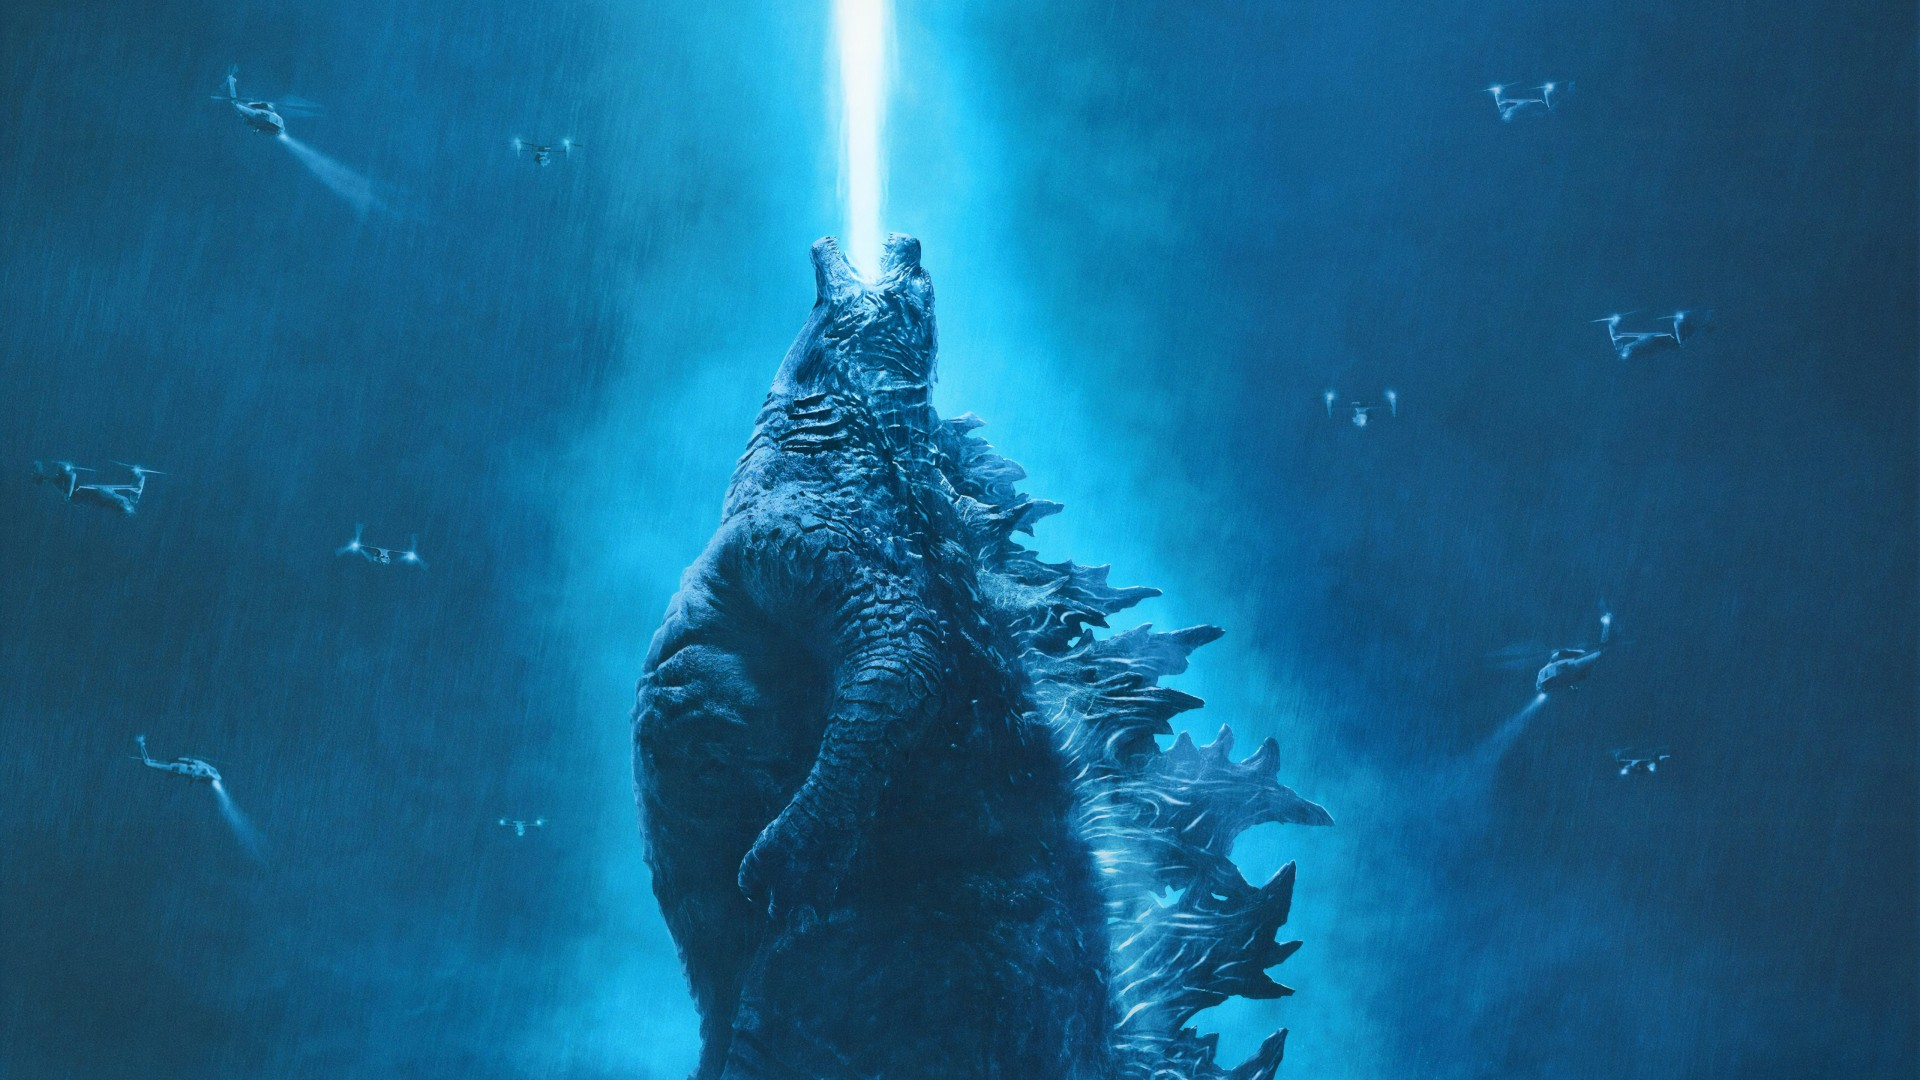 Apple Wallpaper Iphone 7 Hd Godzilla King Of The Monsters 2019 5k Wallpapers Hd